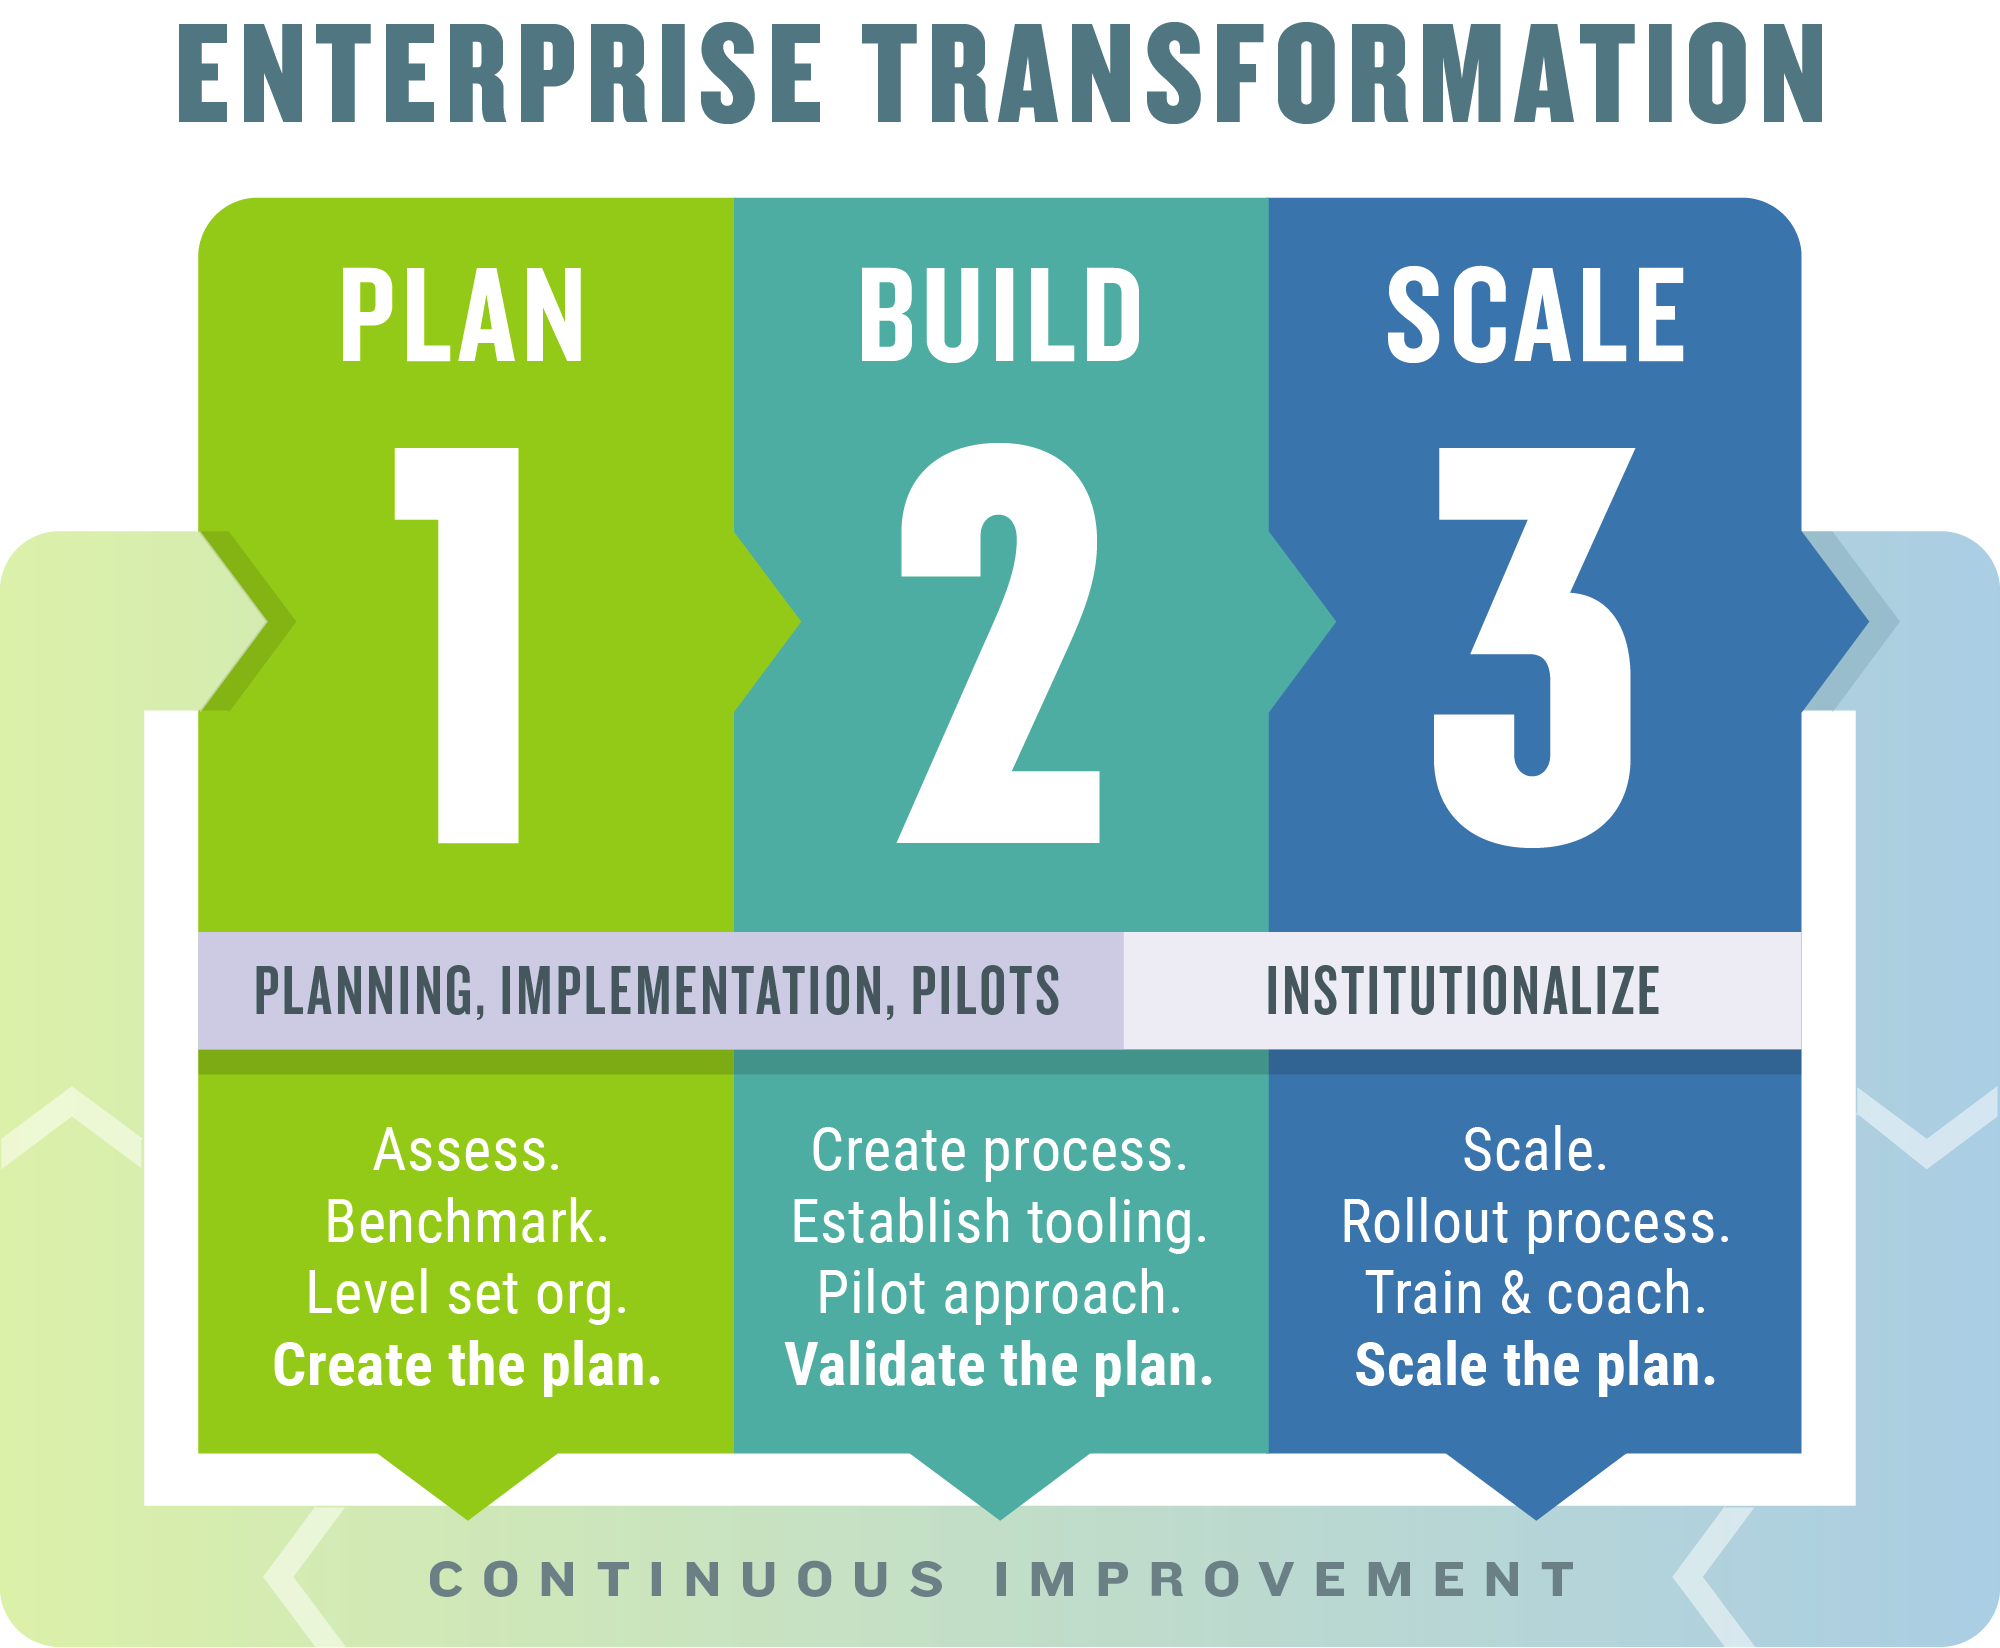 Enterprise Transformation Model